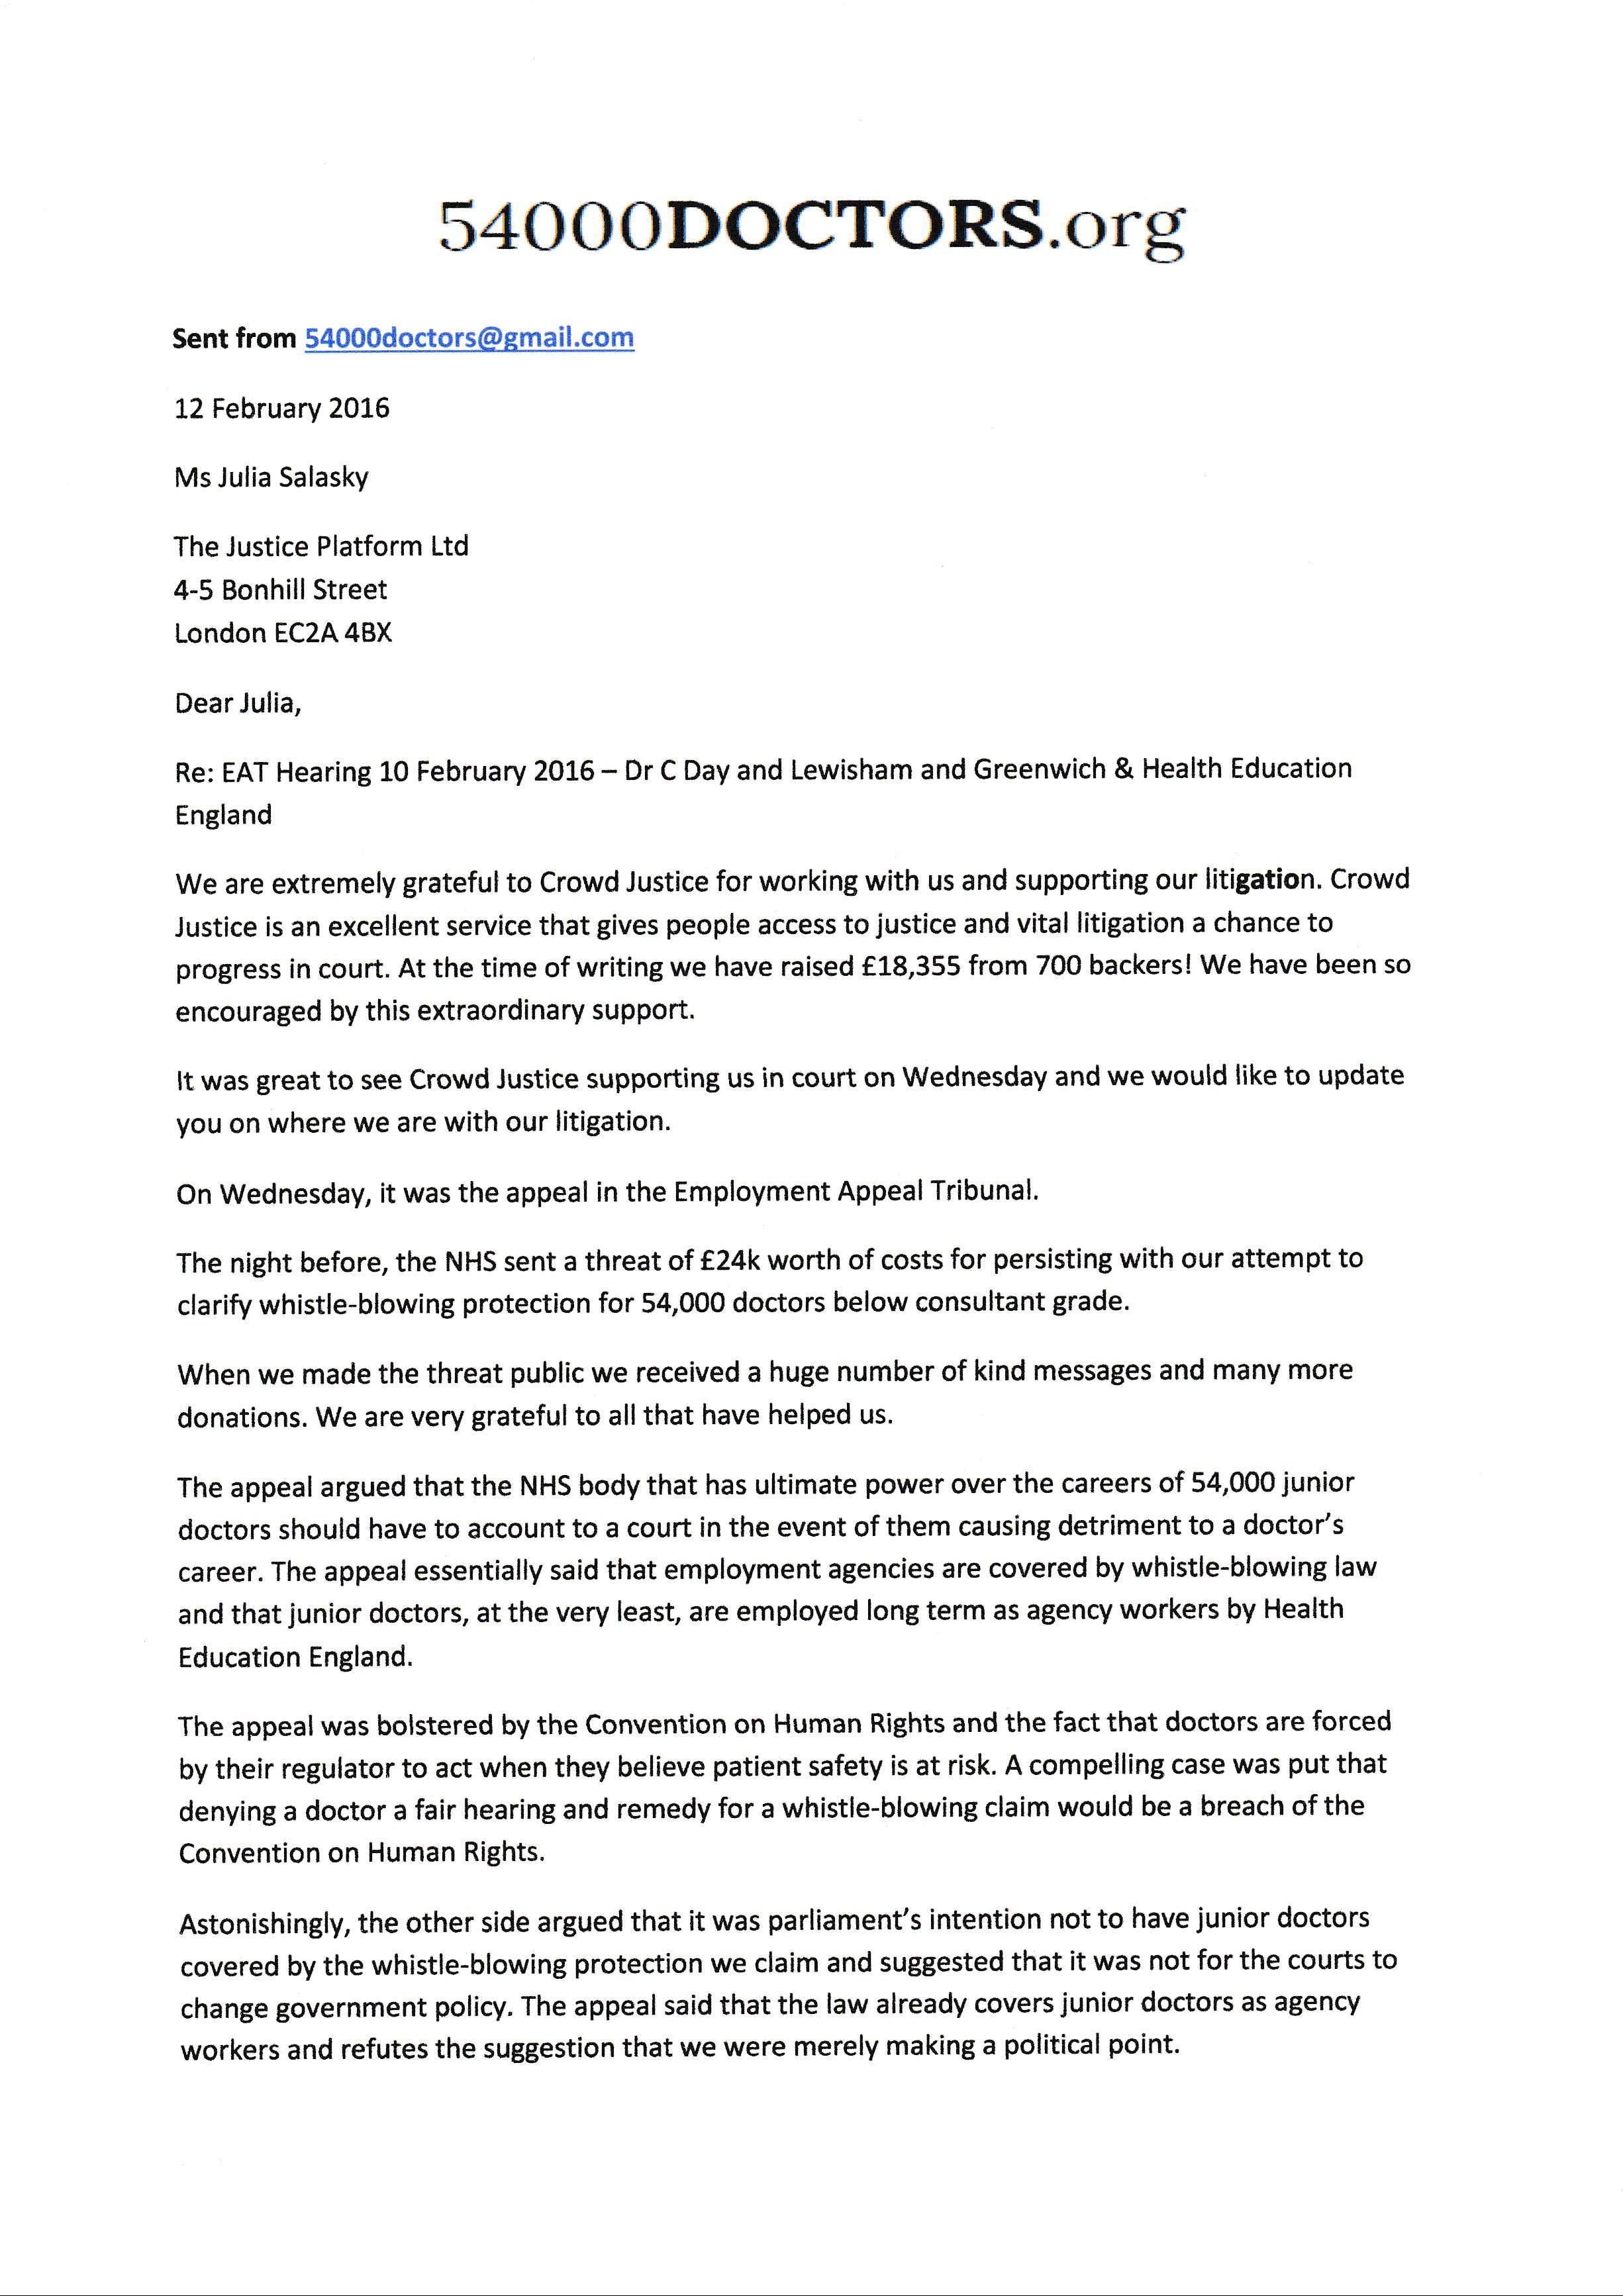 letter to crowd justice ceo update from eat hearing